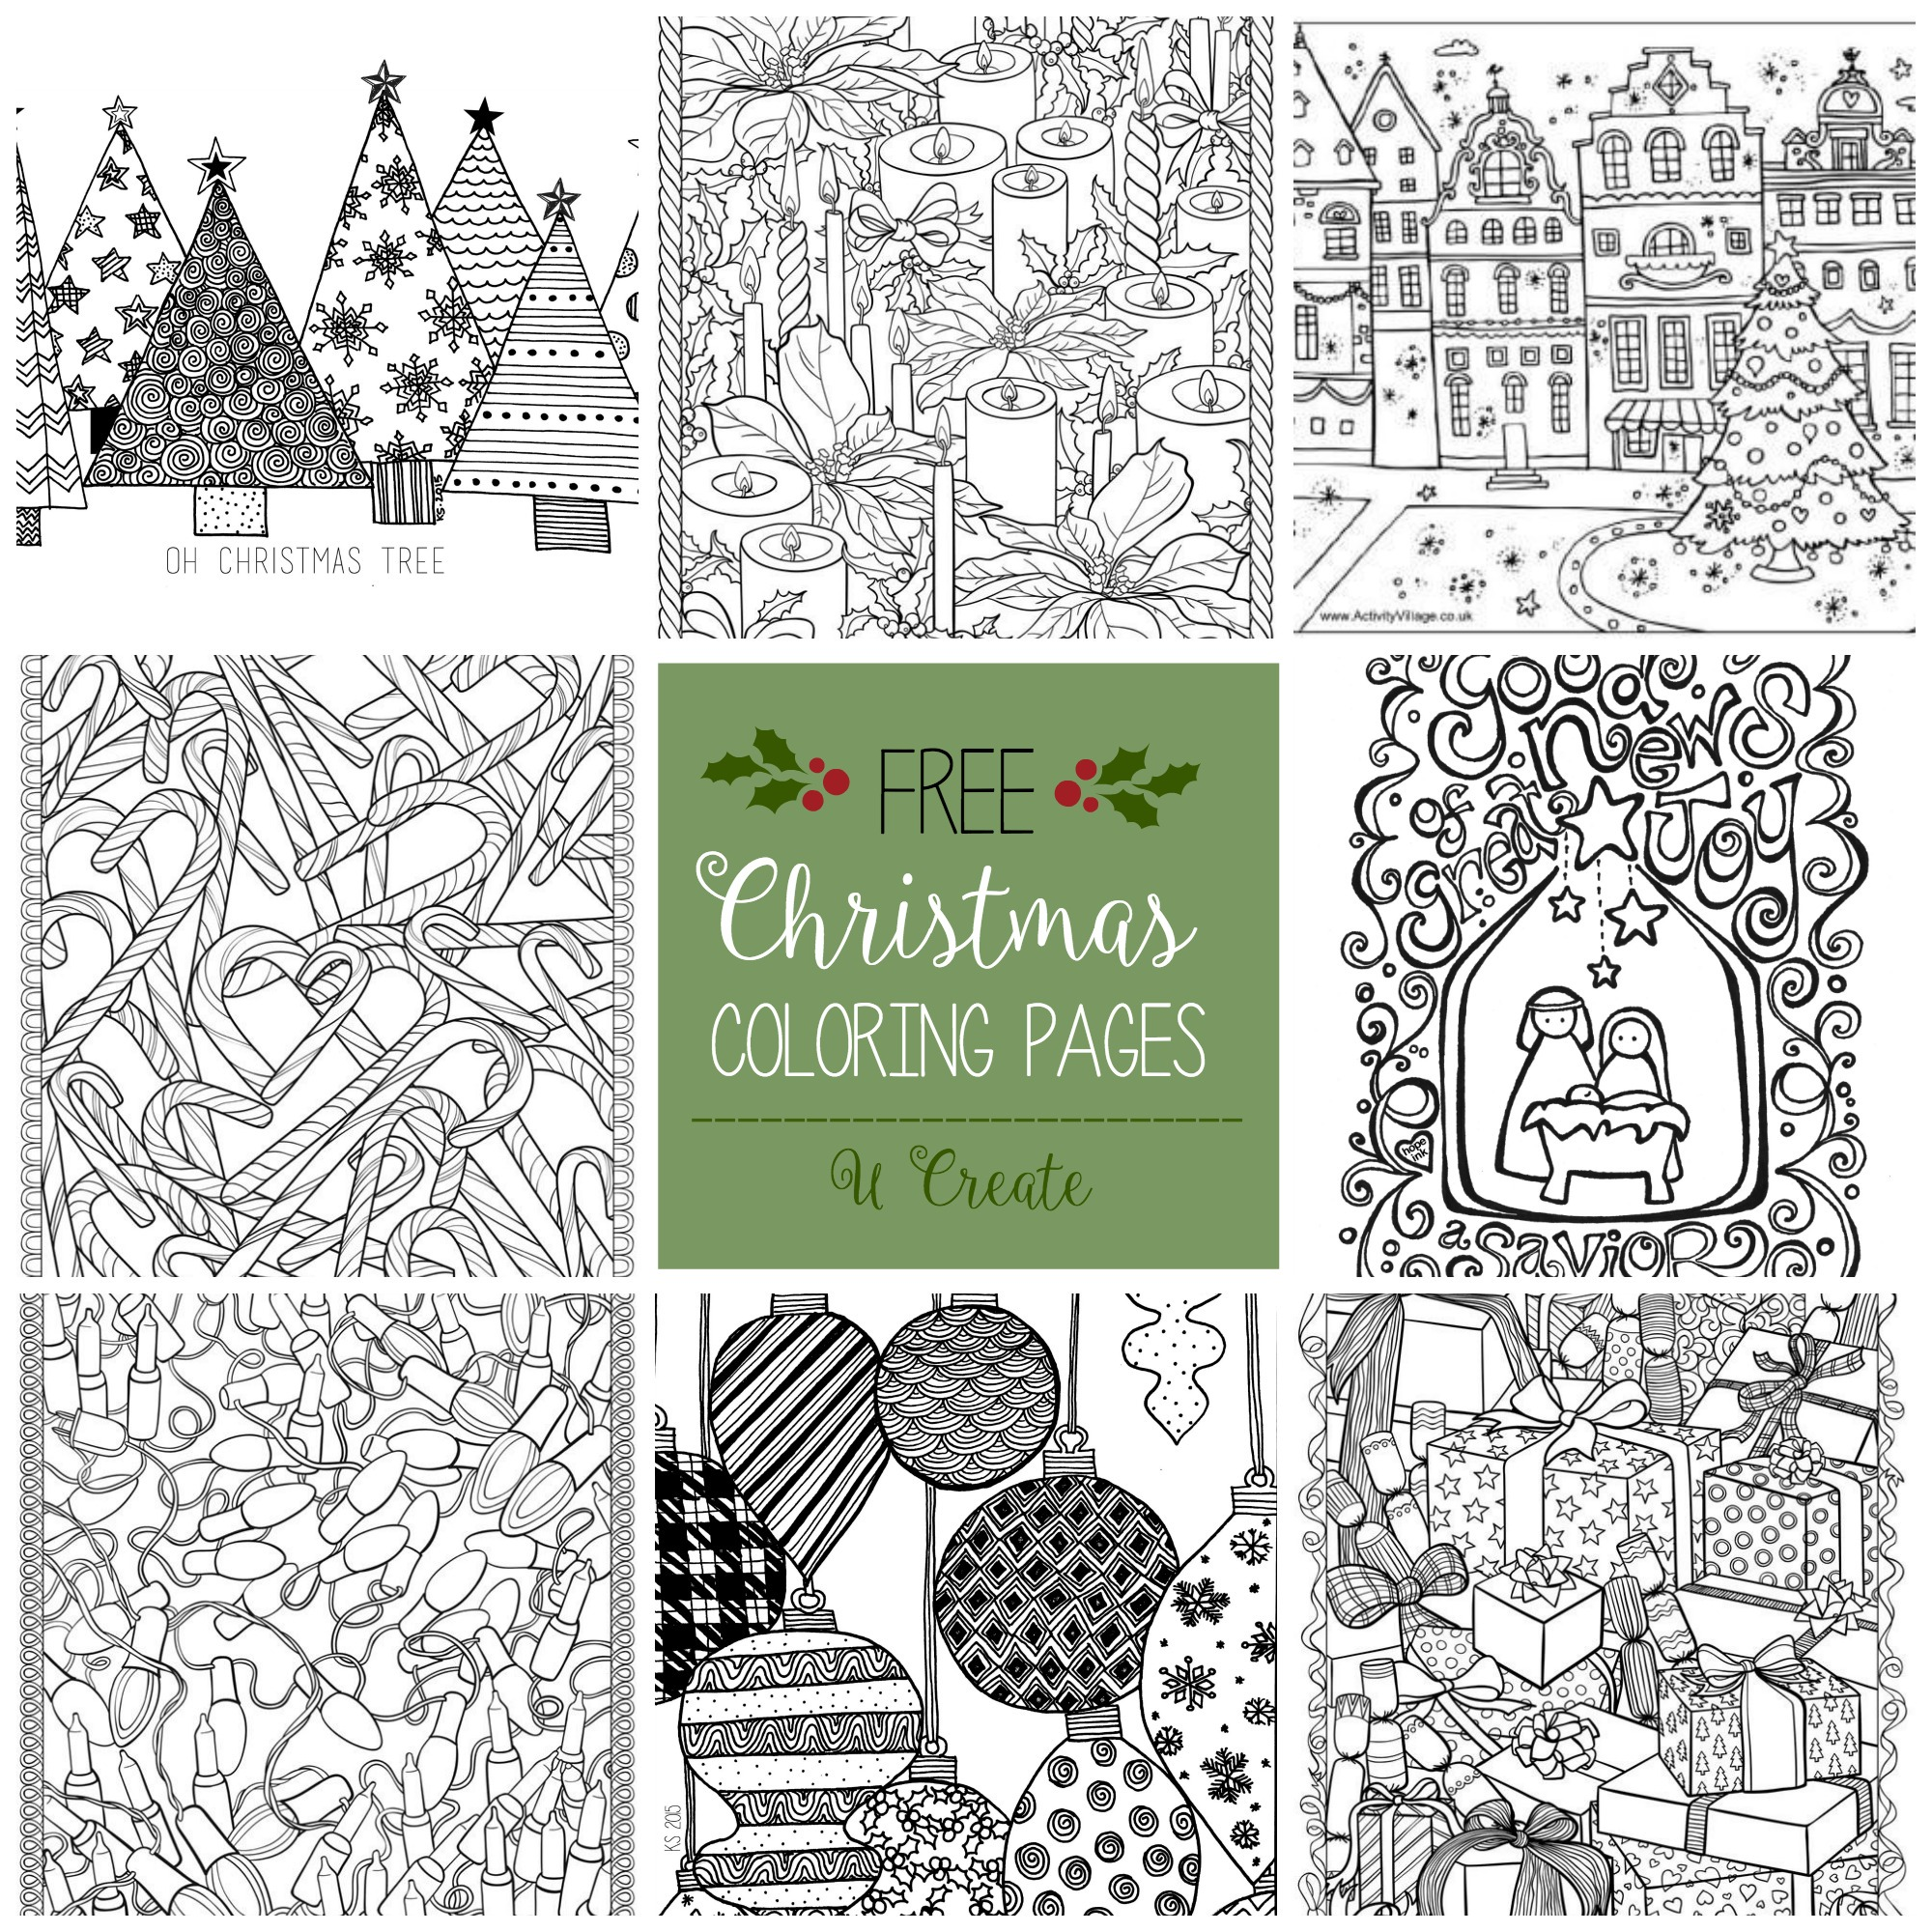 Very Detailed Christmas Coloring Pages With Free Adult U Create